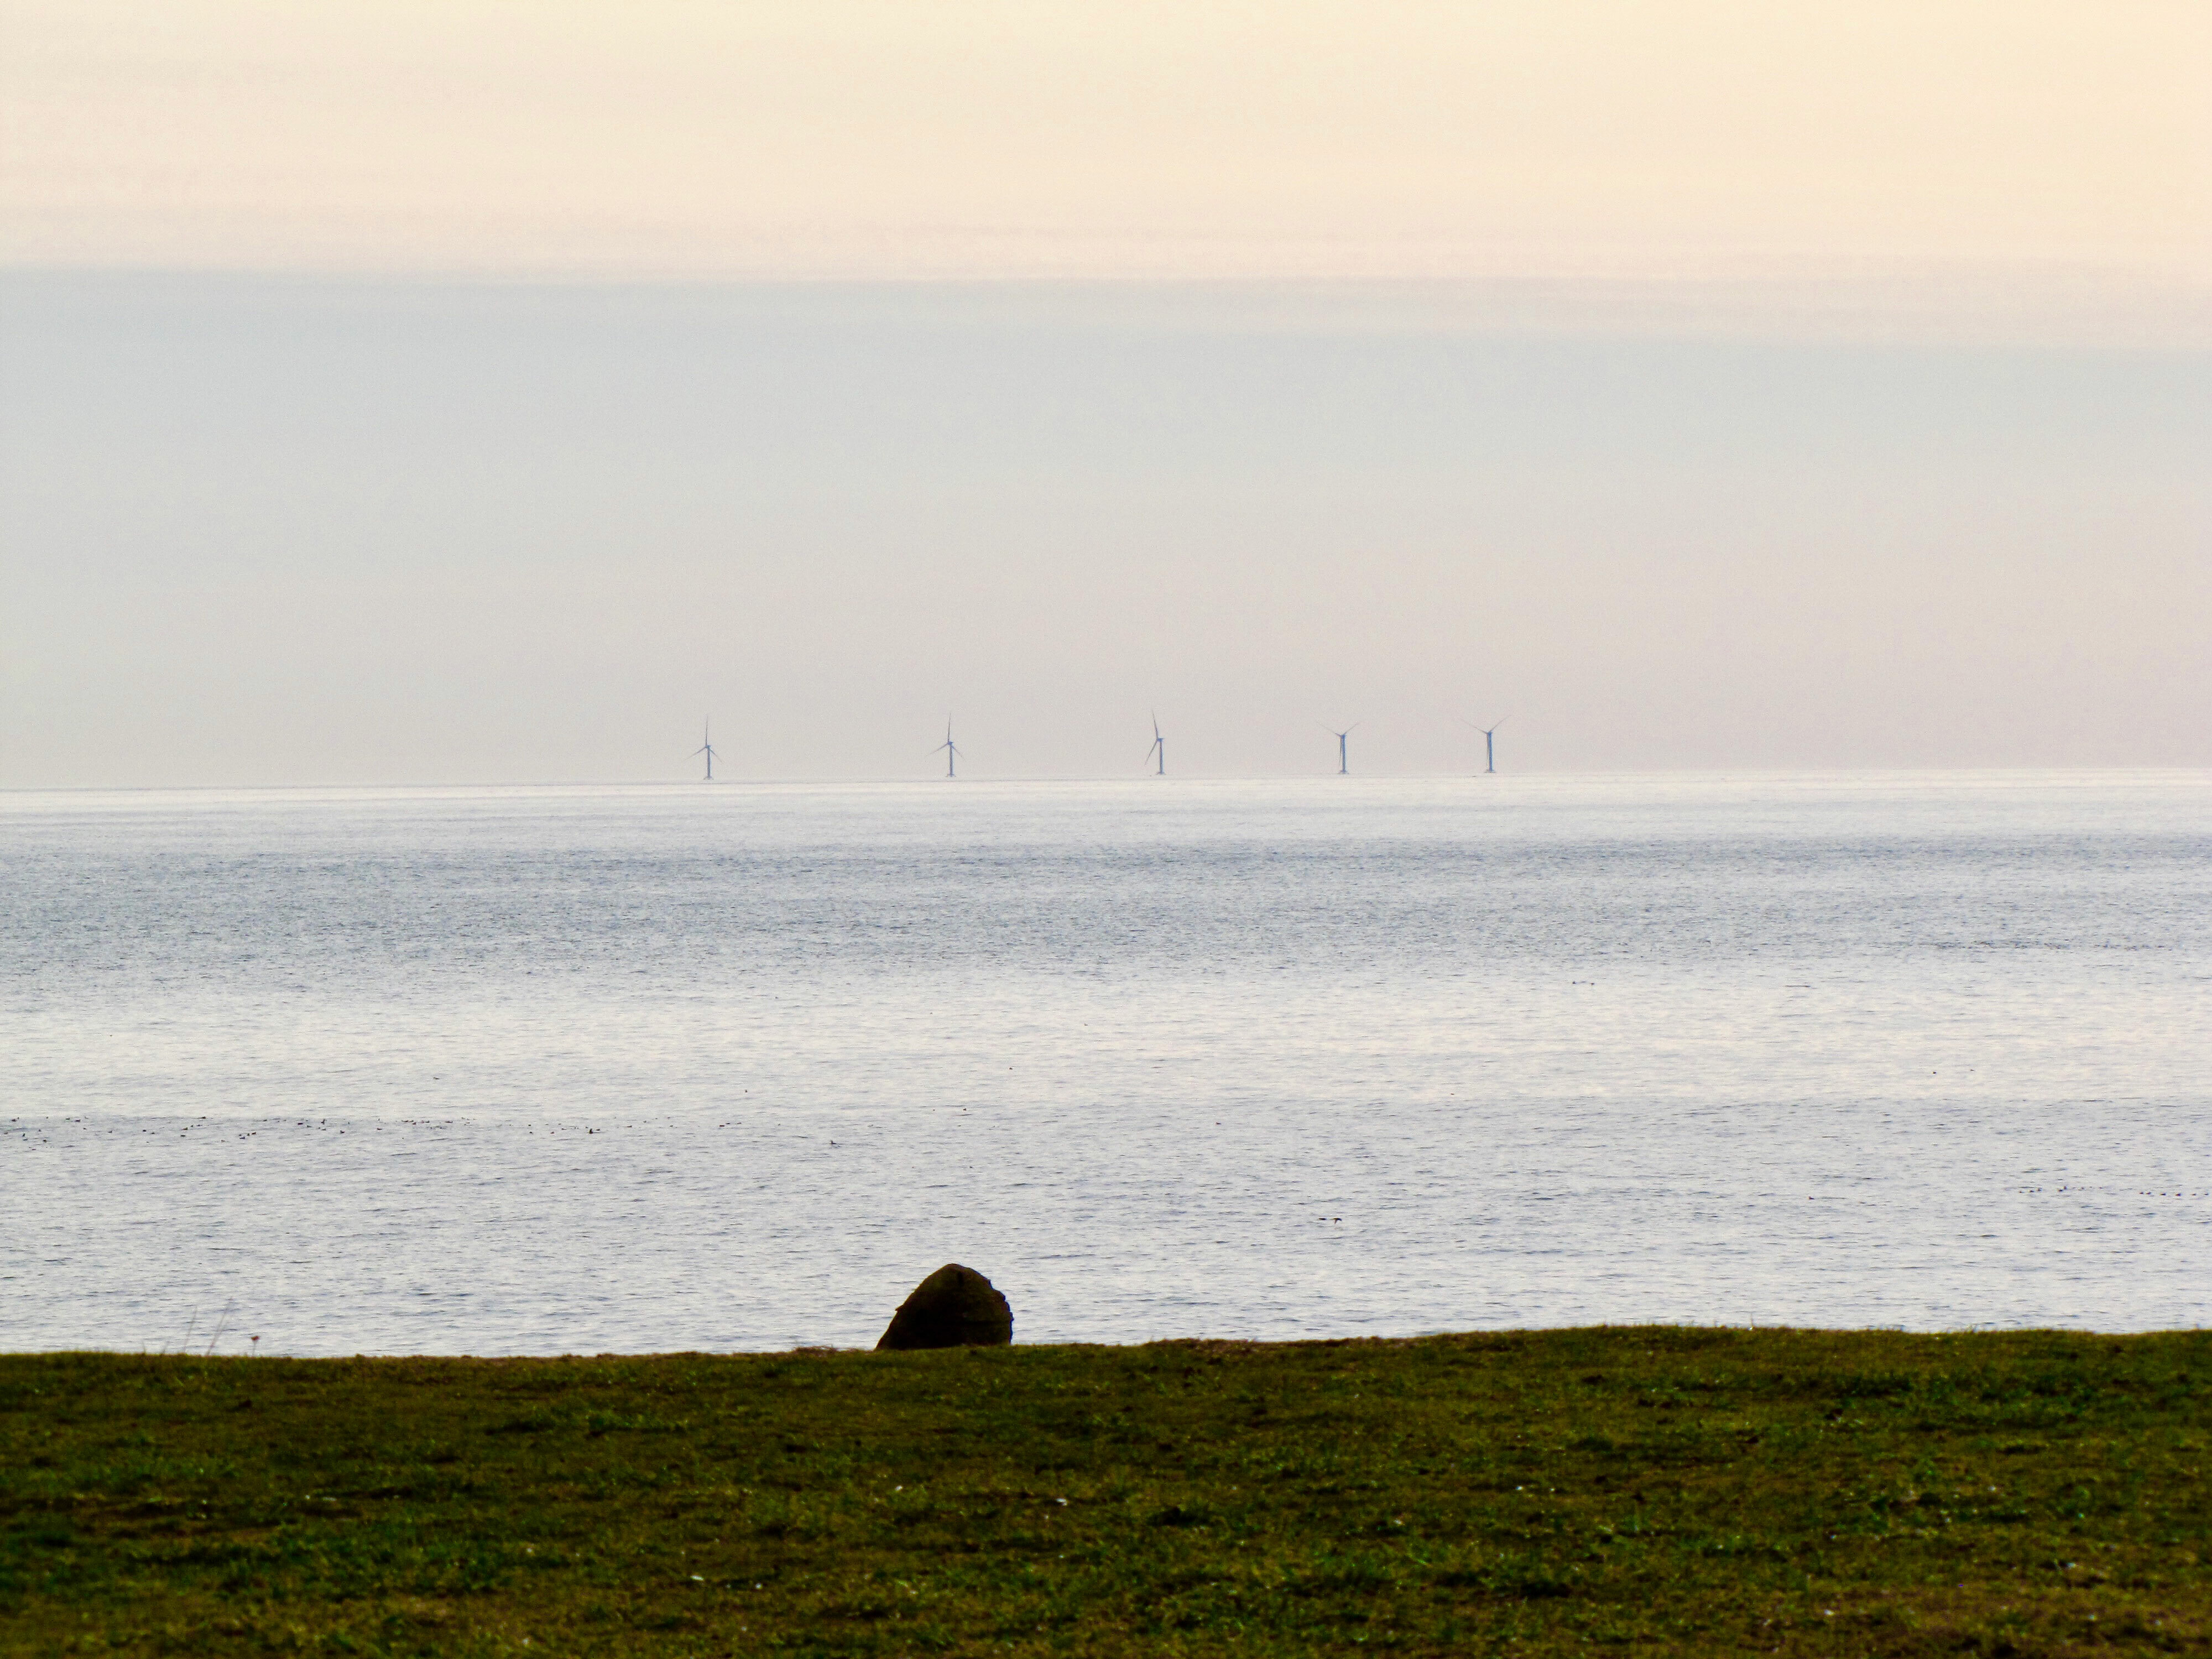 The Block Island Wind Farm as seen from the bluffs in Montauk.